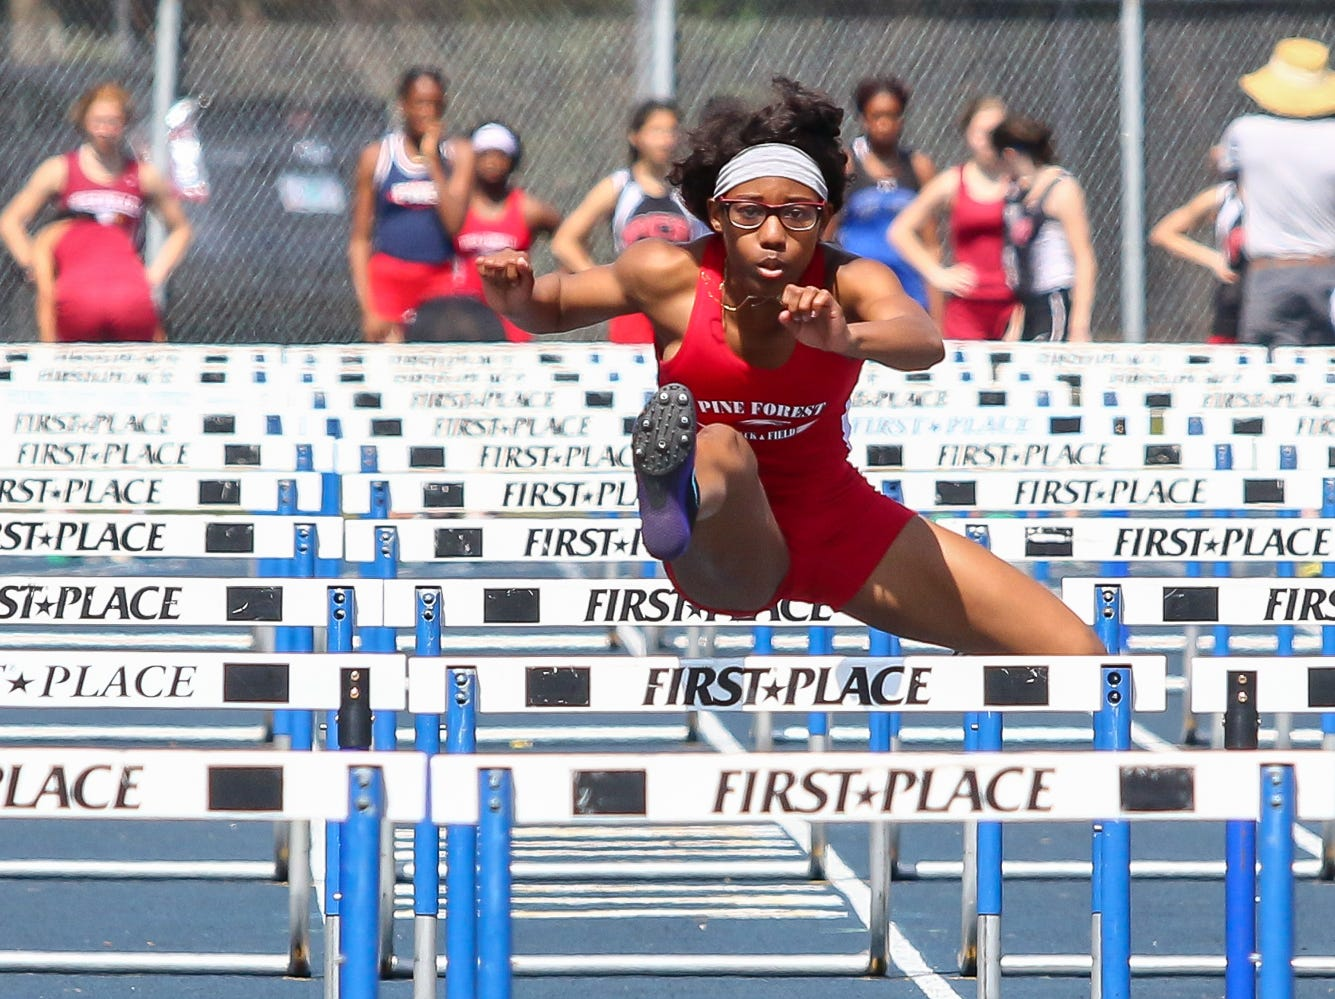 Pine Forest's Kori Arrington competes in the 100m hurdles on Saturday, March 9, 2019, during the Aggie Invitational at Washington High School.